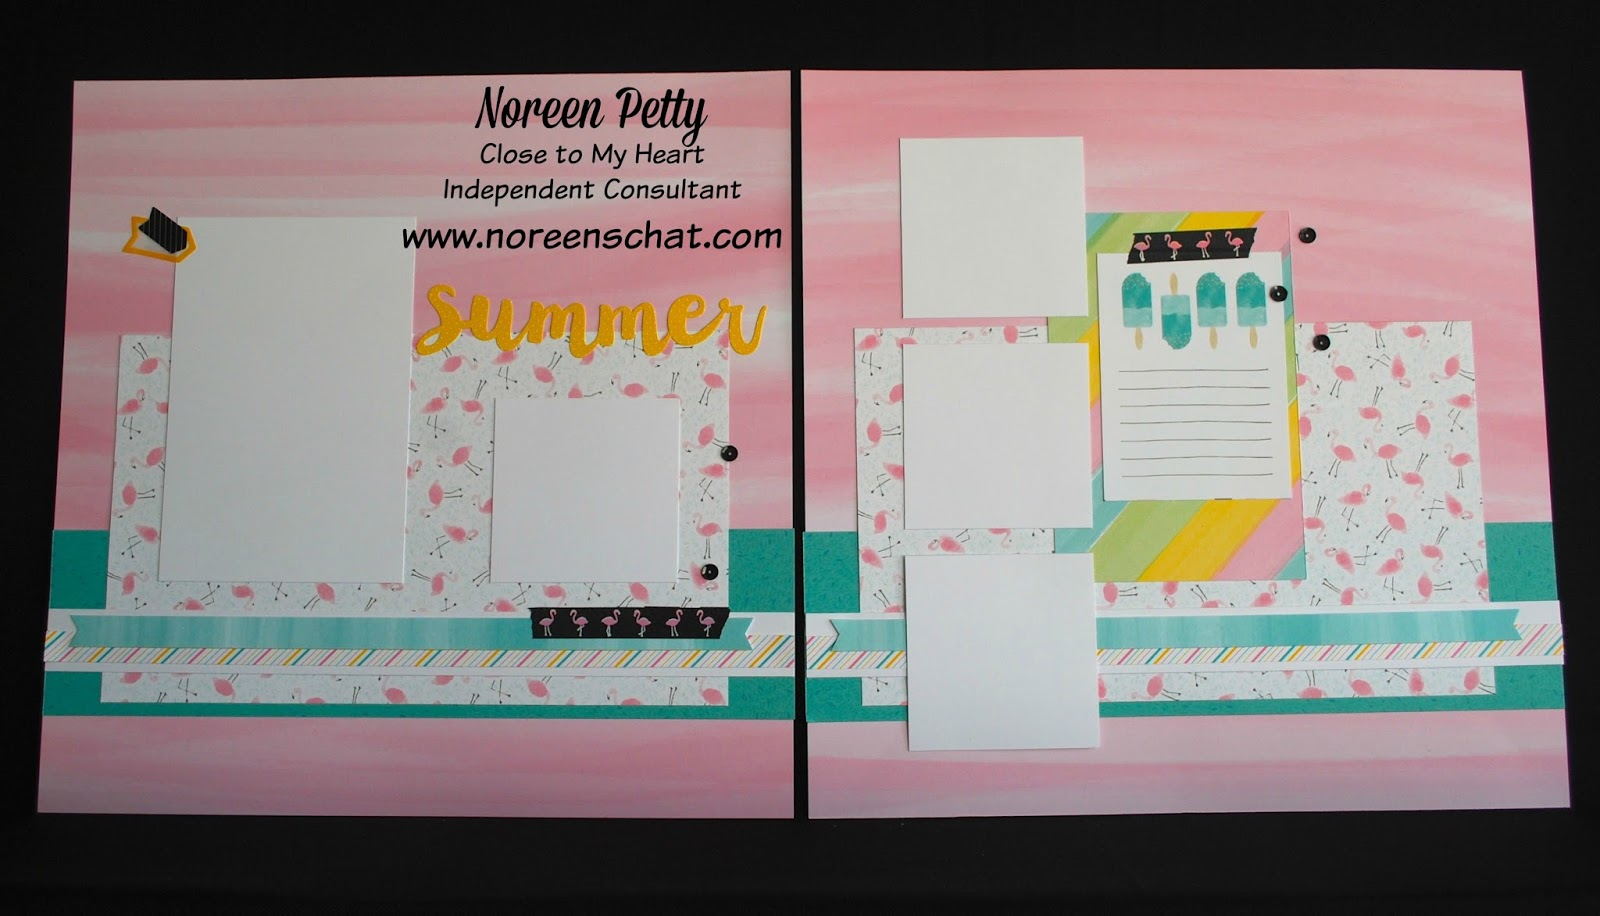 How to scrapbook faster - The Flamingos Have Been Very Popular Between Our Washi Tape Papers Coordinating Stamp Sets With Thin Cuts So Many Options To Play With